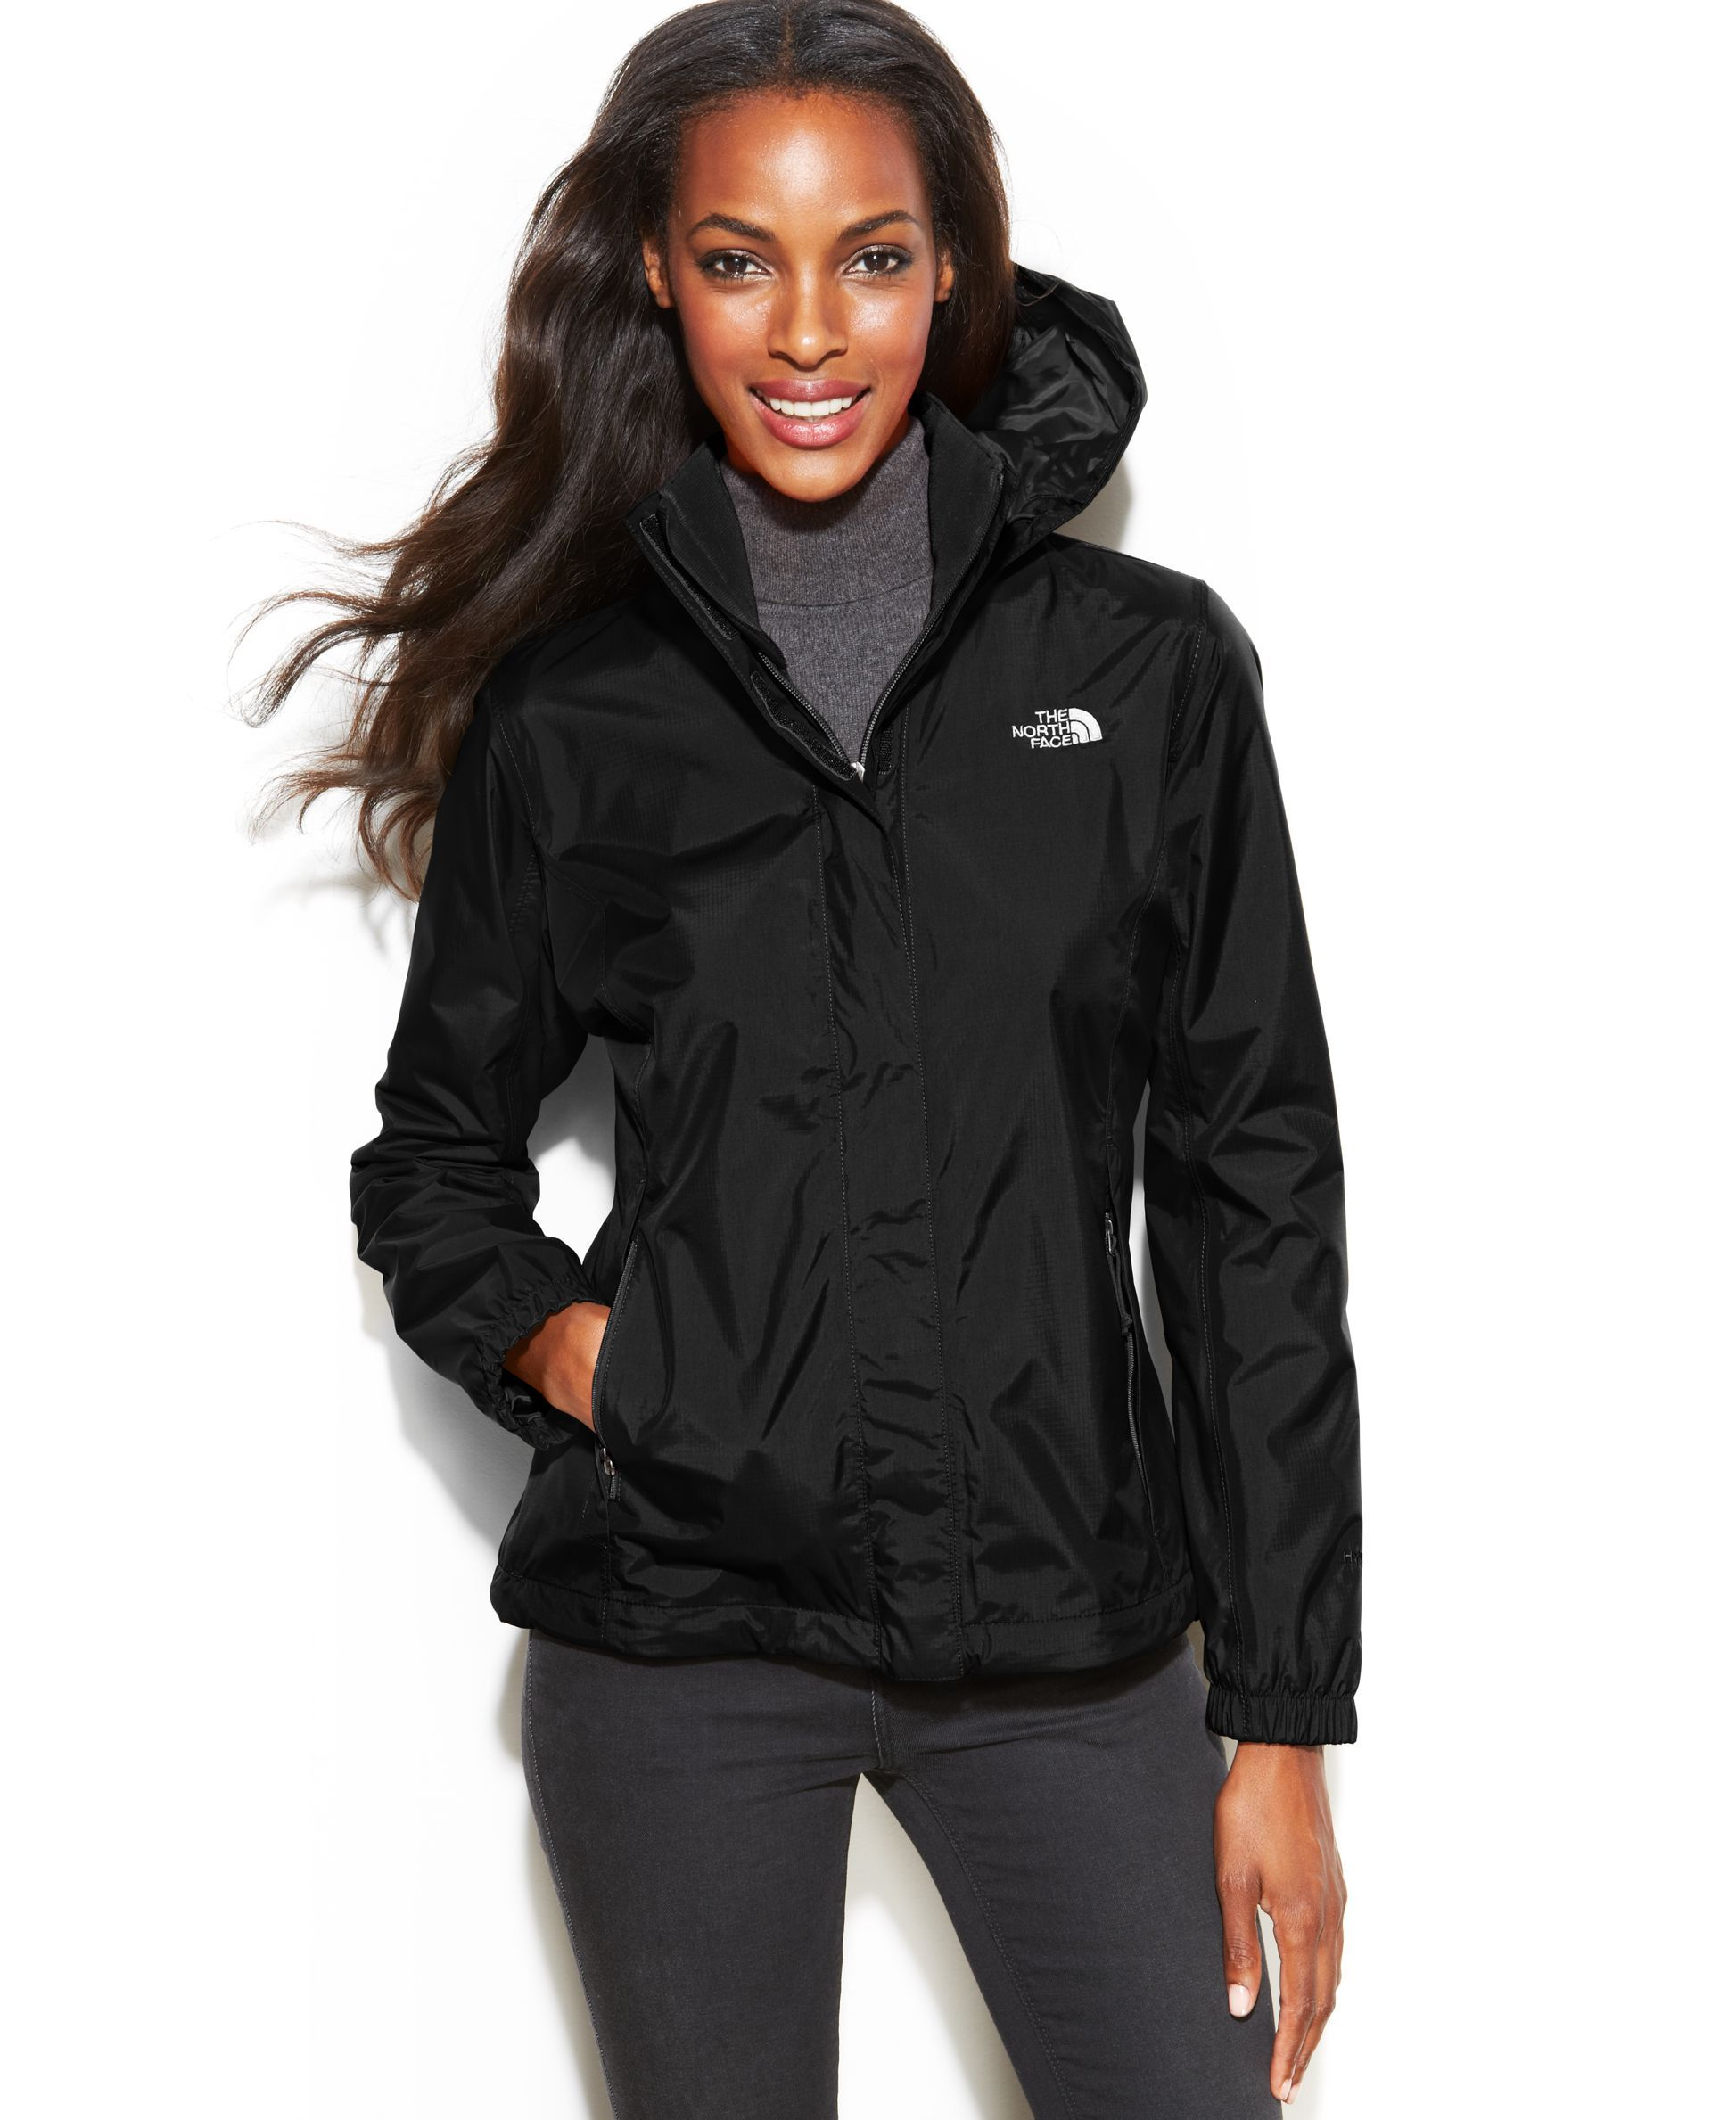 The North Face Resolve Waterproof Jacket Jackets Blazers Women Macy S Waterproof Jacket Blazer Jackets For Women North Face Rain Jacket [ 2378 x 1947 Pixel ]